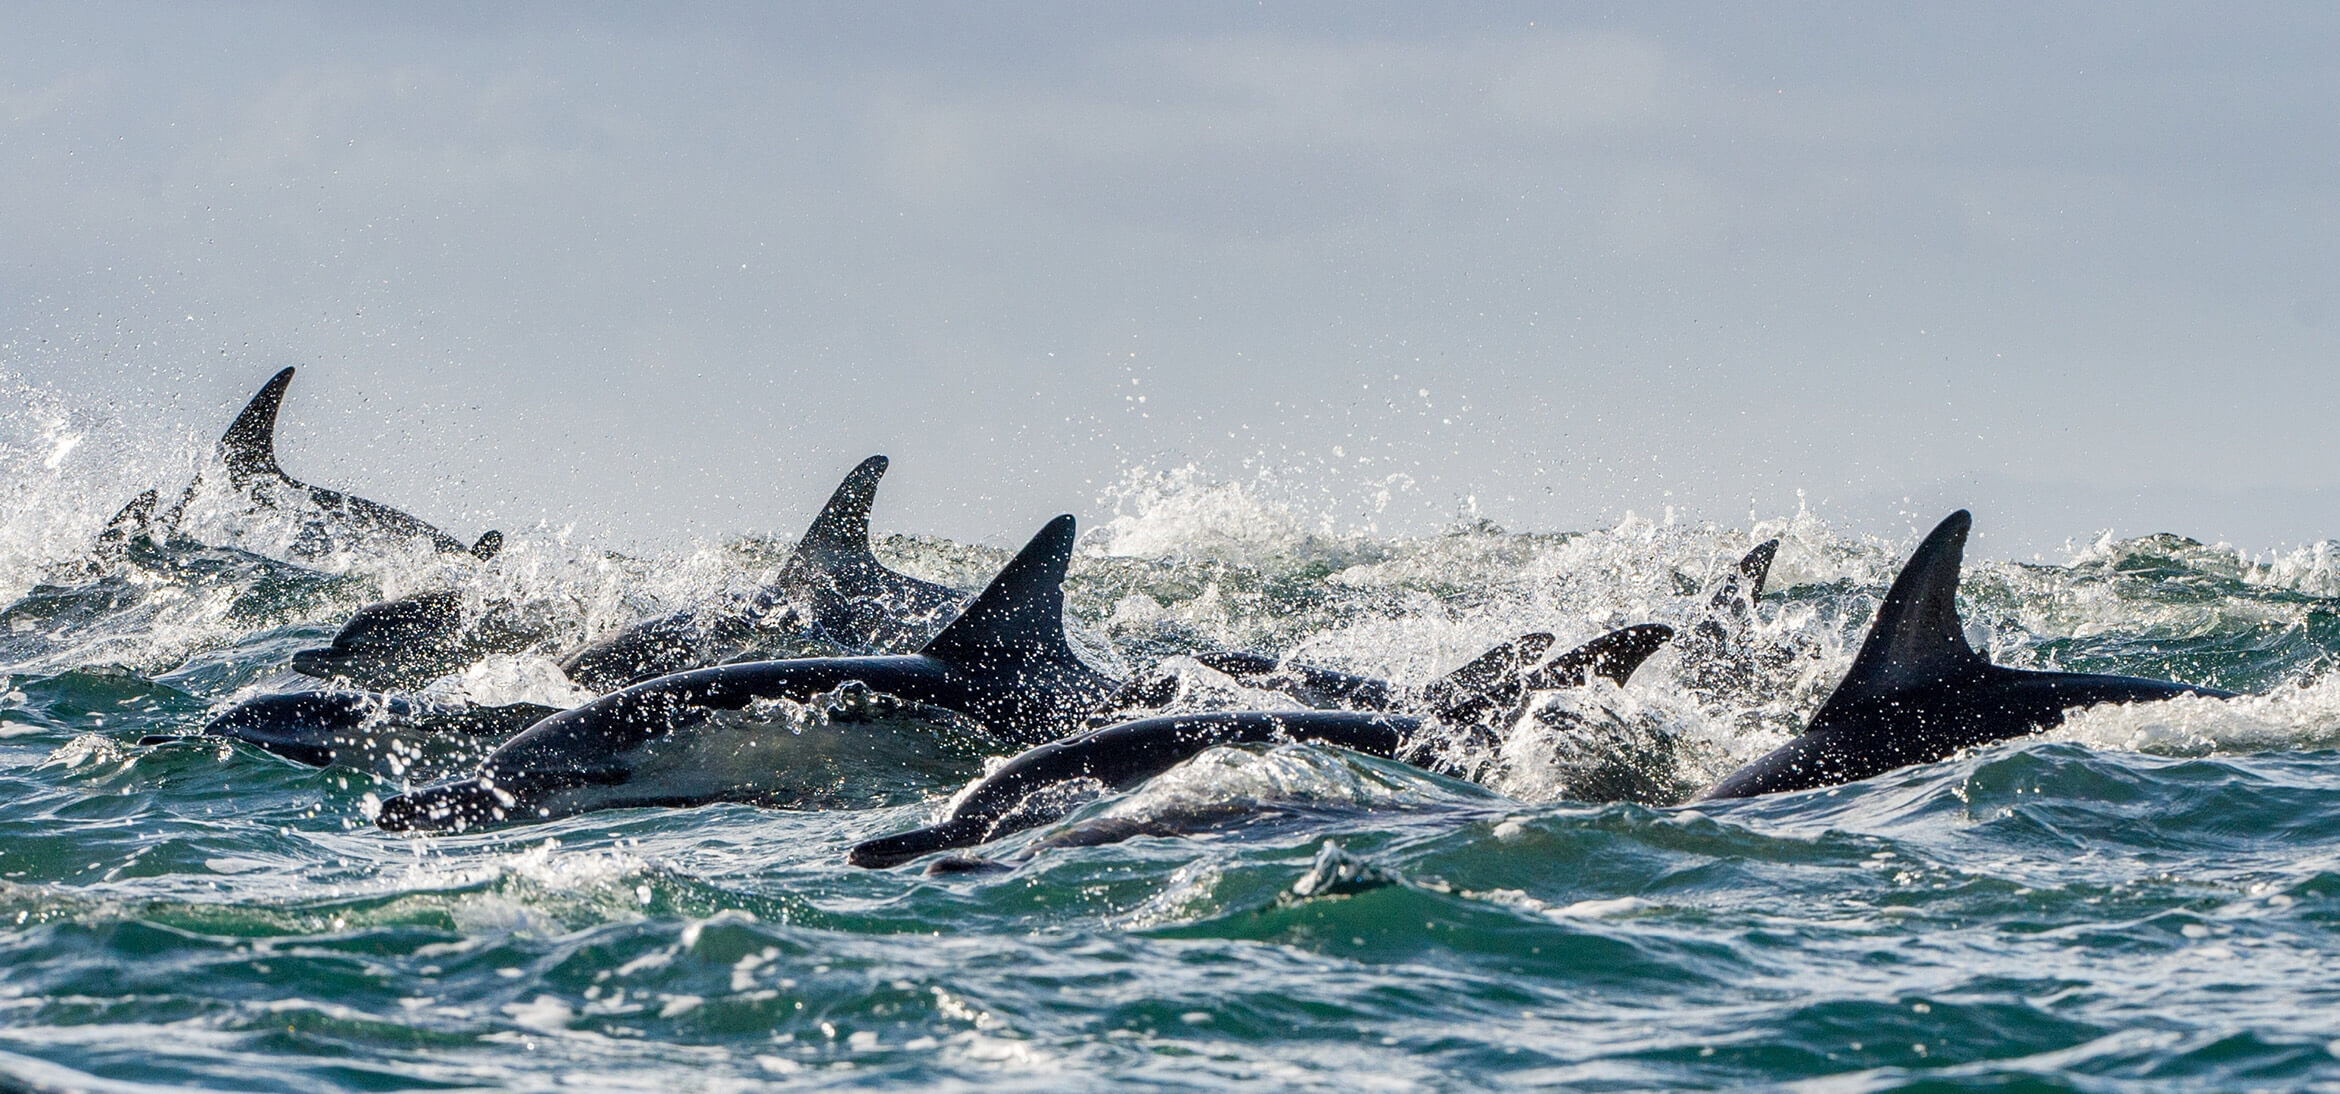 Group of dolphins swimming in the ocean in Alabama